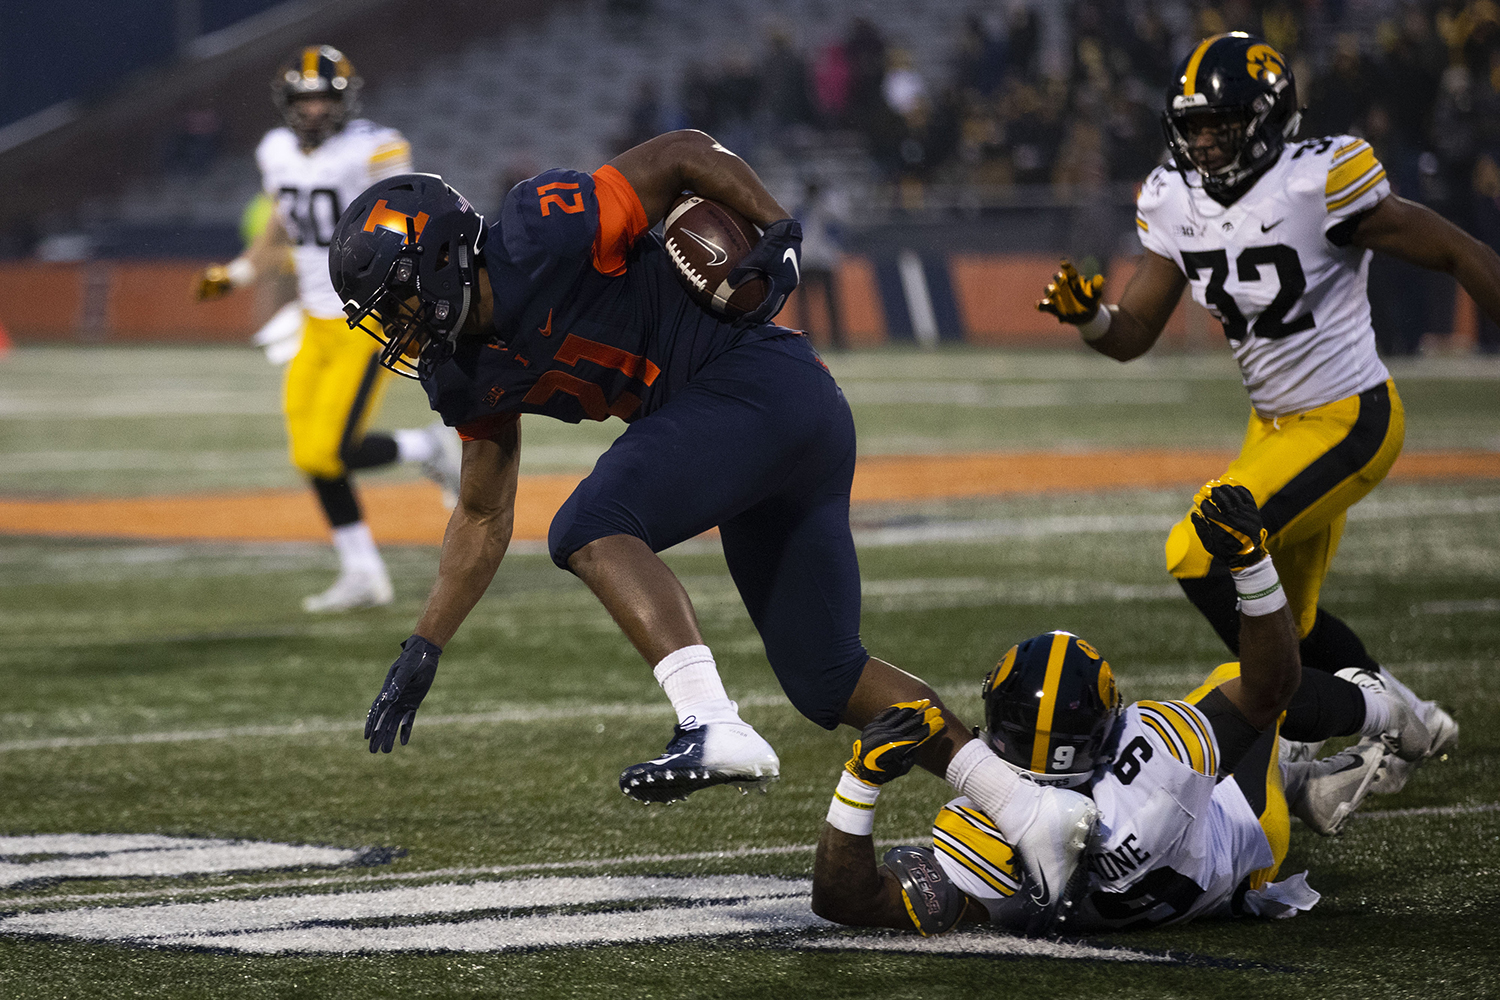 Illinois' RaVon Bonner runs the ball during the Iowa/Illinois football game at Memorial Stadium in Champaign on Saturday, November 17, 2018. The Hawkeyes defeated the Fighting Illini, 63-0, to snap a 3-game losing streak.